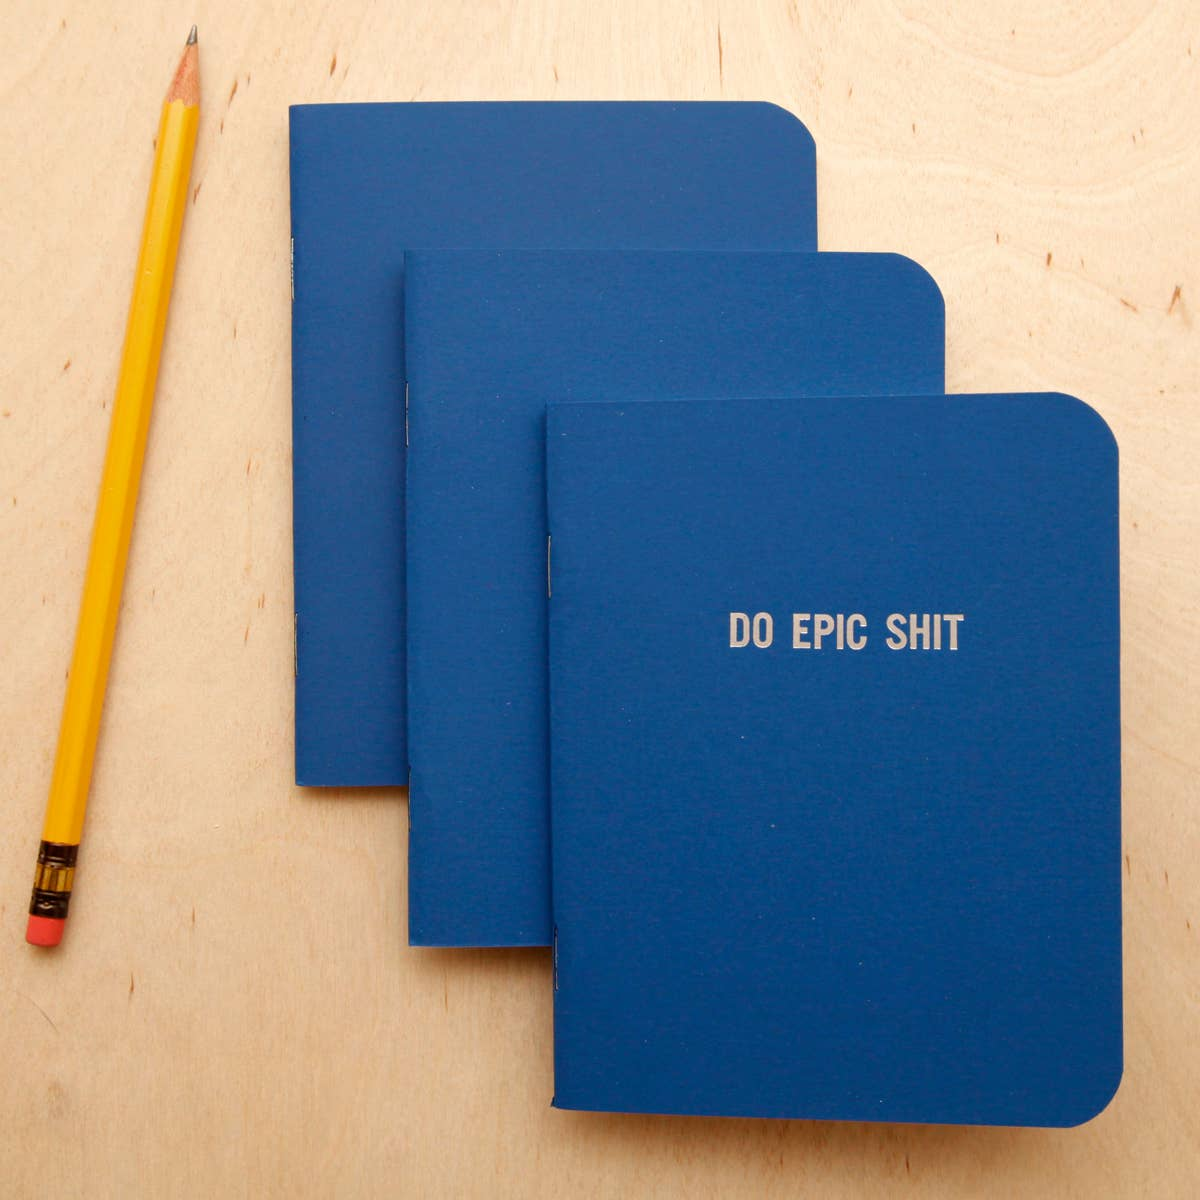 DO EPIC SHIT - Notebook - Femme Wares Niagara Local Small Business